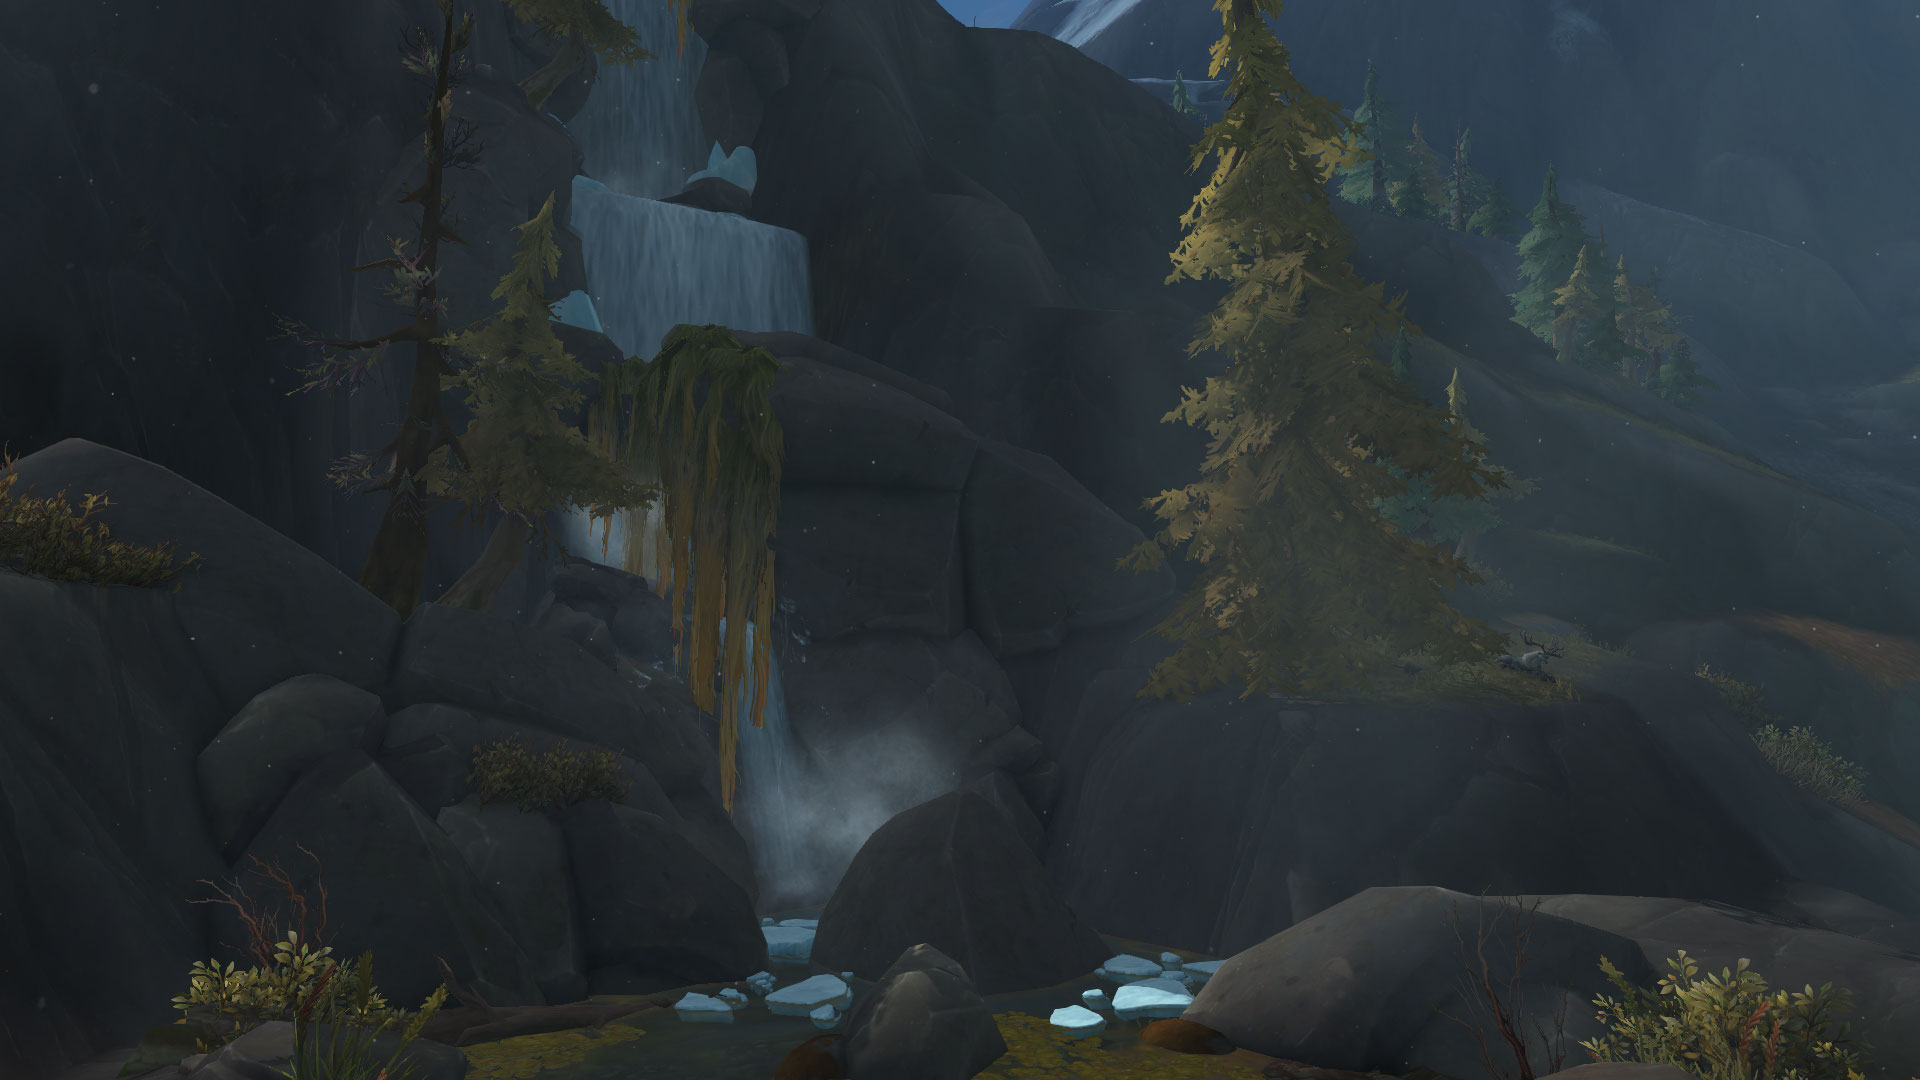 WoW Waterfall Hidden Cave